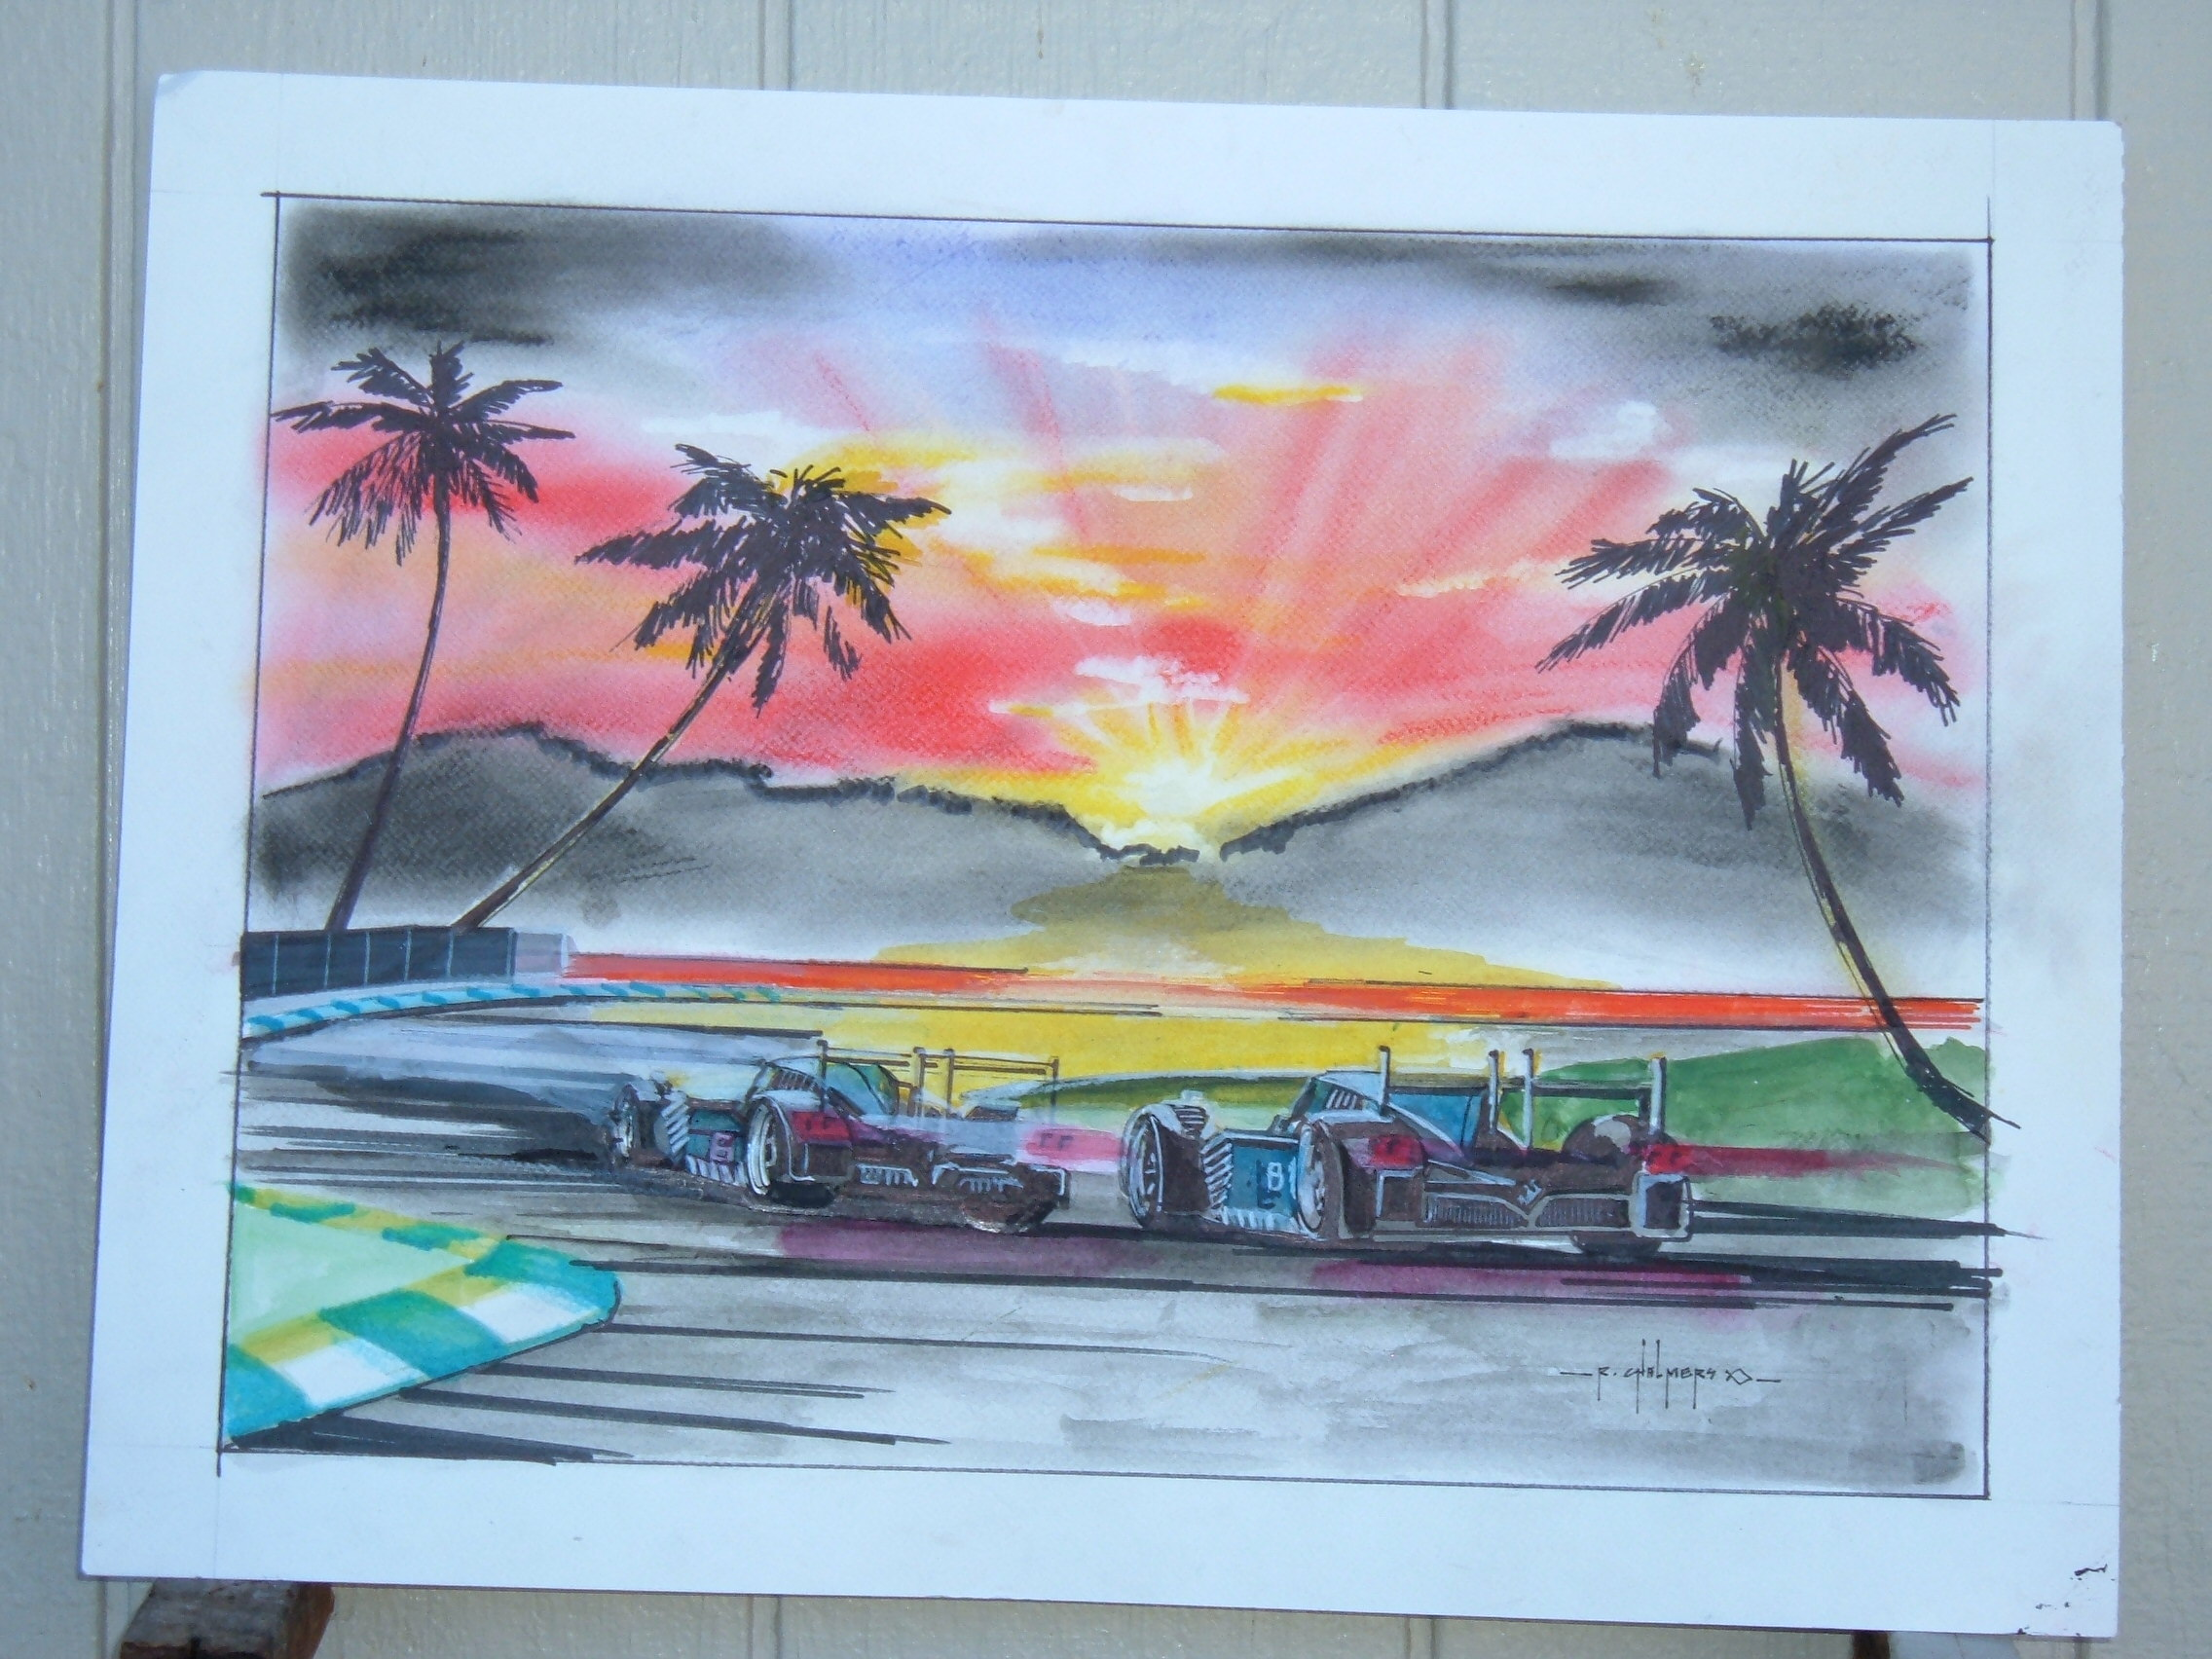 Click image for larger version  Name:Ron's Art 004.jpg Views:179 Size:697.0 KB ID:54126